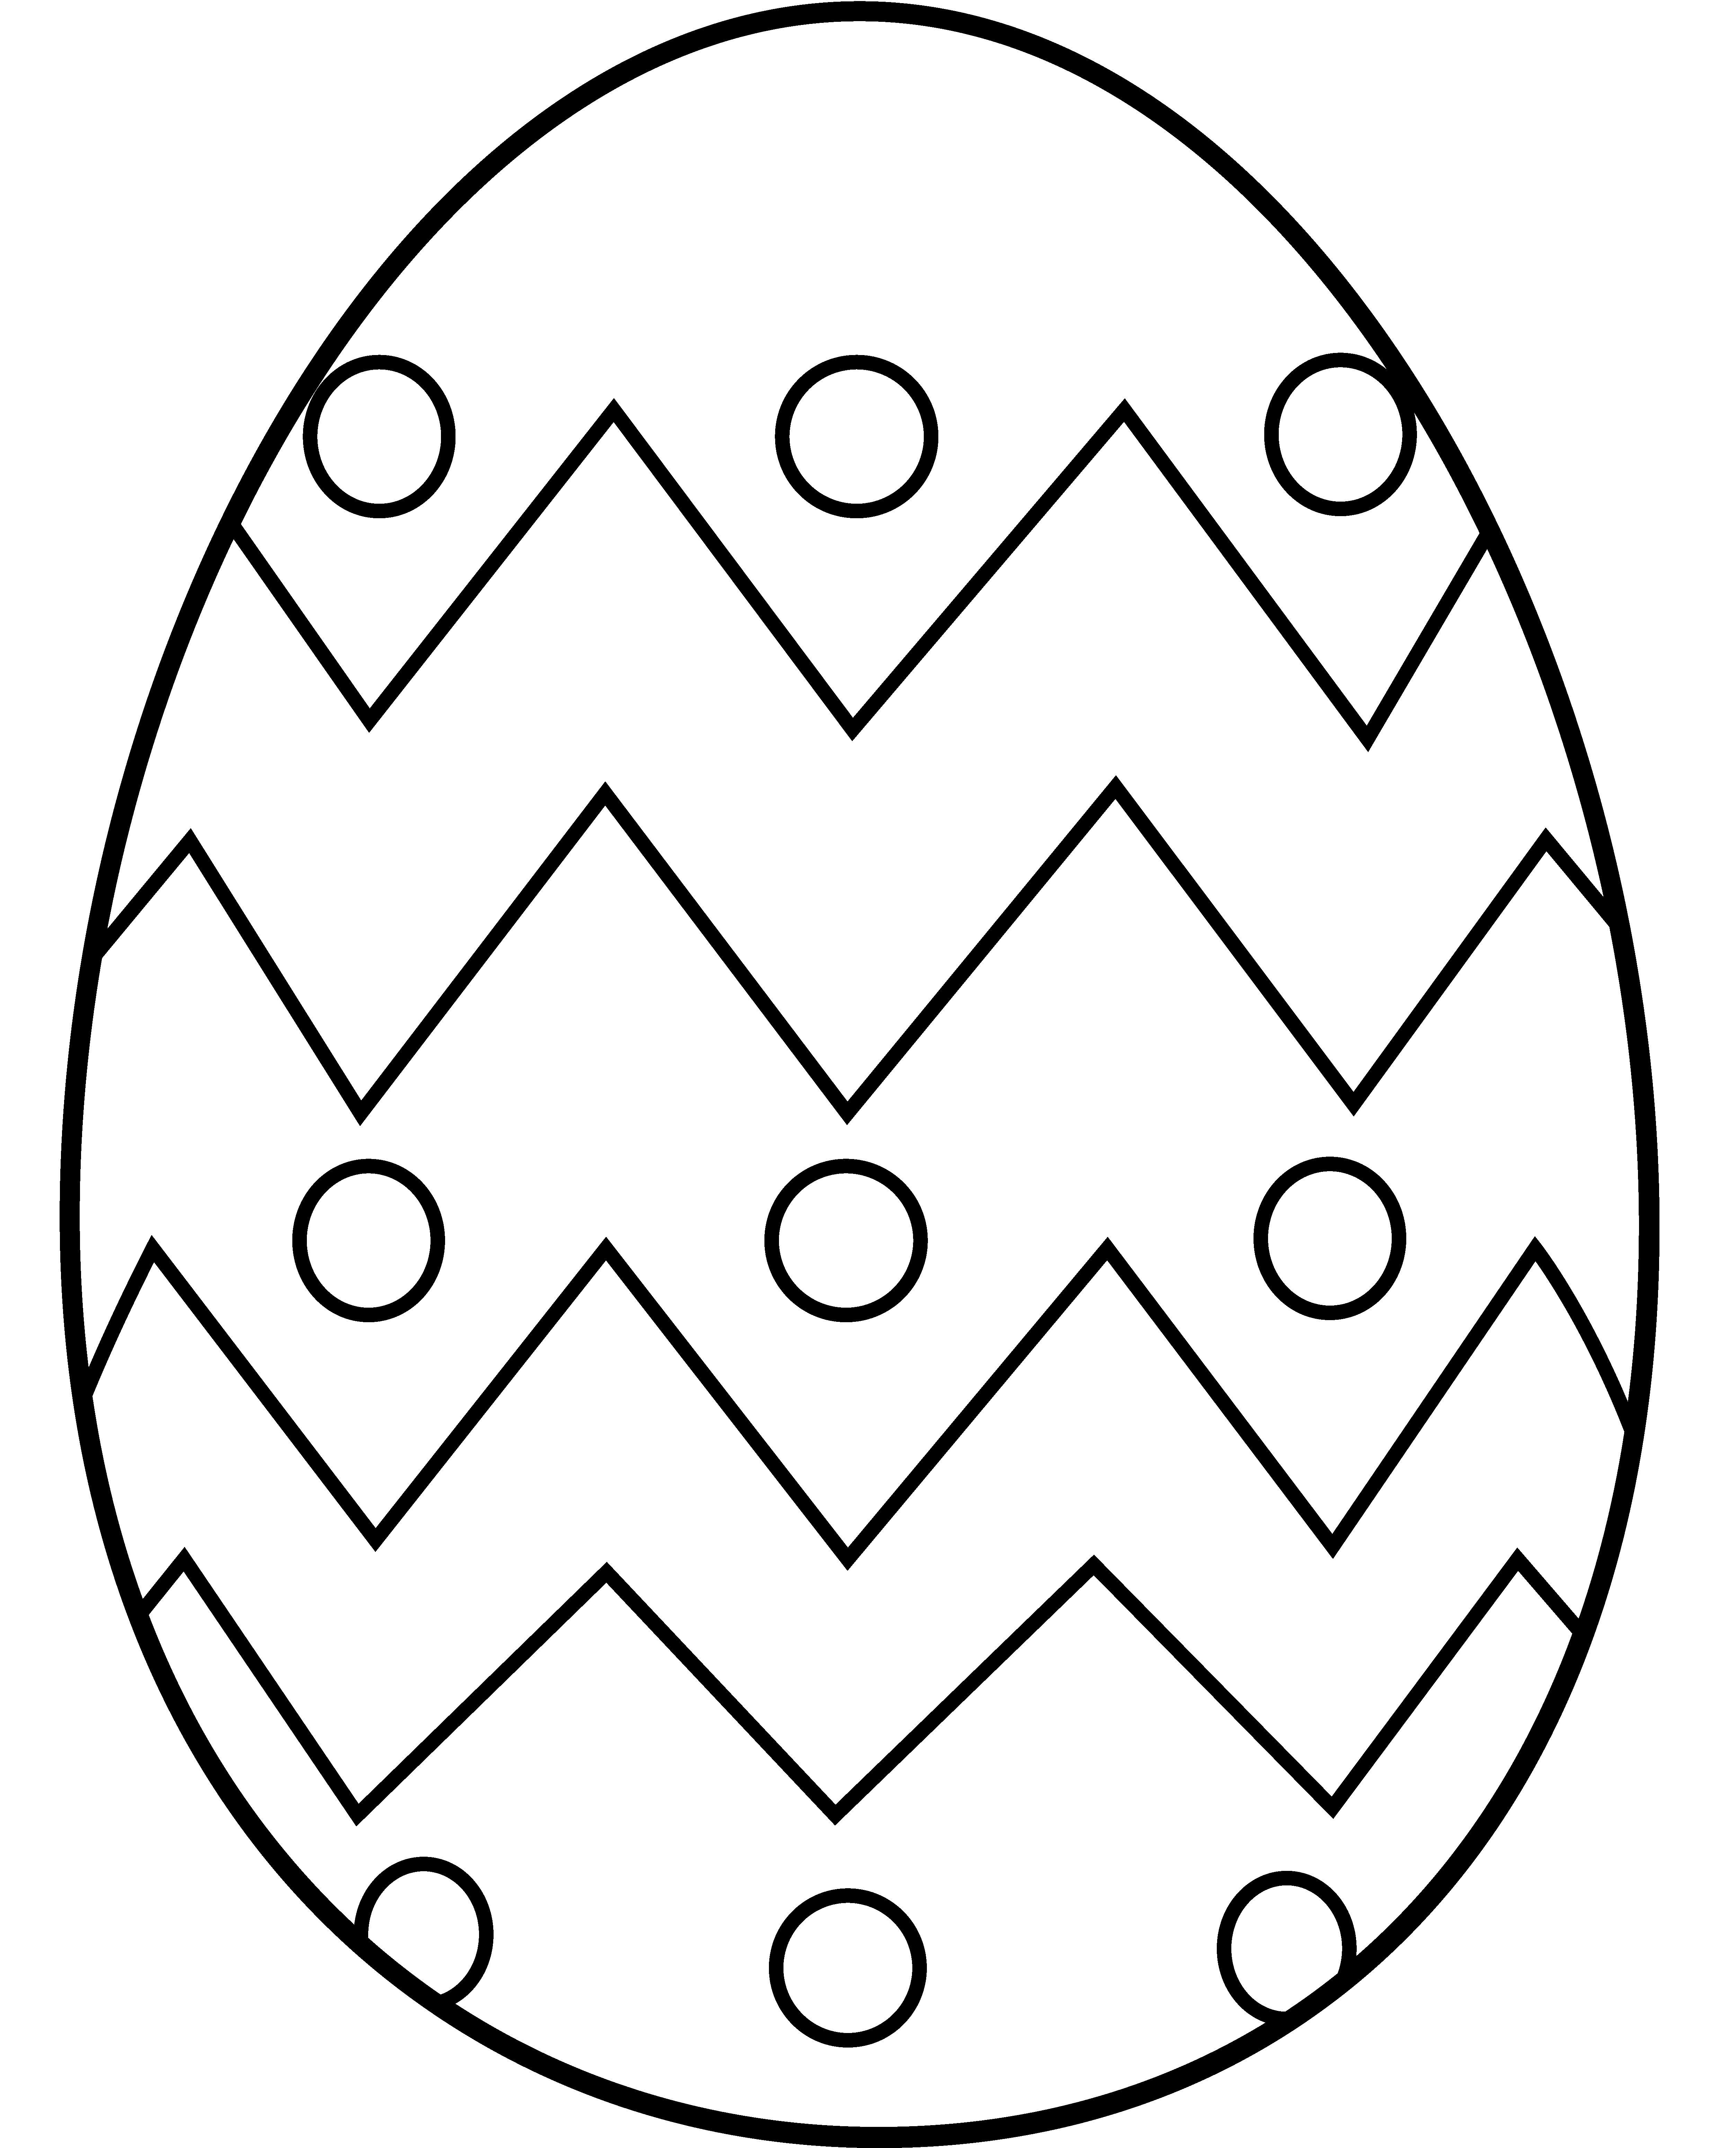 colouring picture easter egg easter coloring pages for adults best coloring pages for picture egg colouring easter